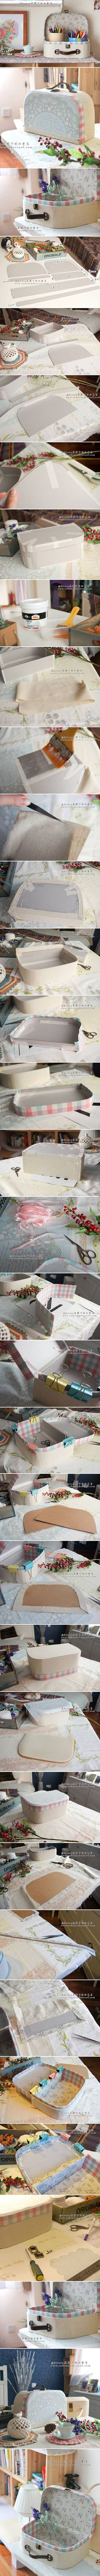 DIY Retro Cosmetic Case Using Cardboard and Fabric DIY. Keep in mind this is not an upcycle; it shows you how to make the case from cardboard. Diy Paper, Paper Crafts, Cardboard Crafts, Diy Box, Cosmetic Case, Diy Projects To Try, Diy And Crafts, Retro, How To Make